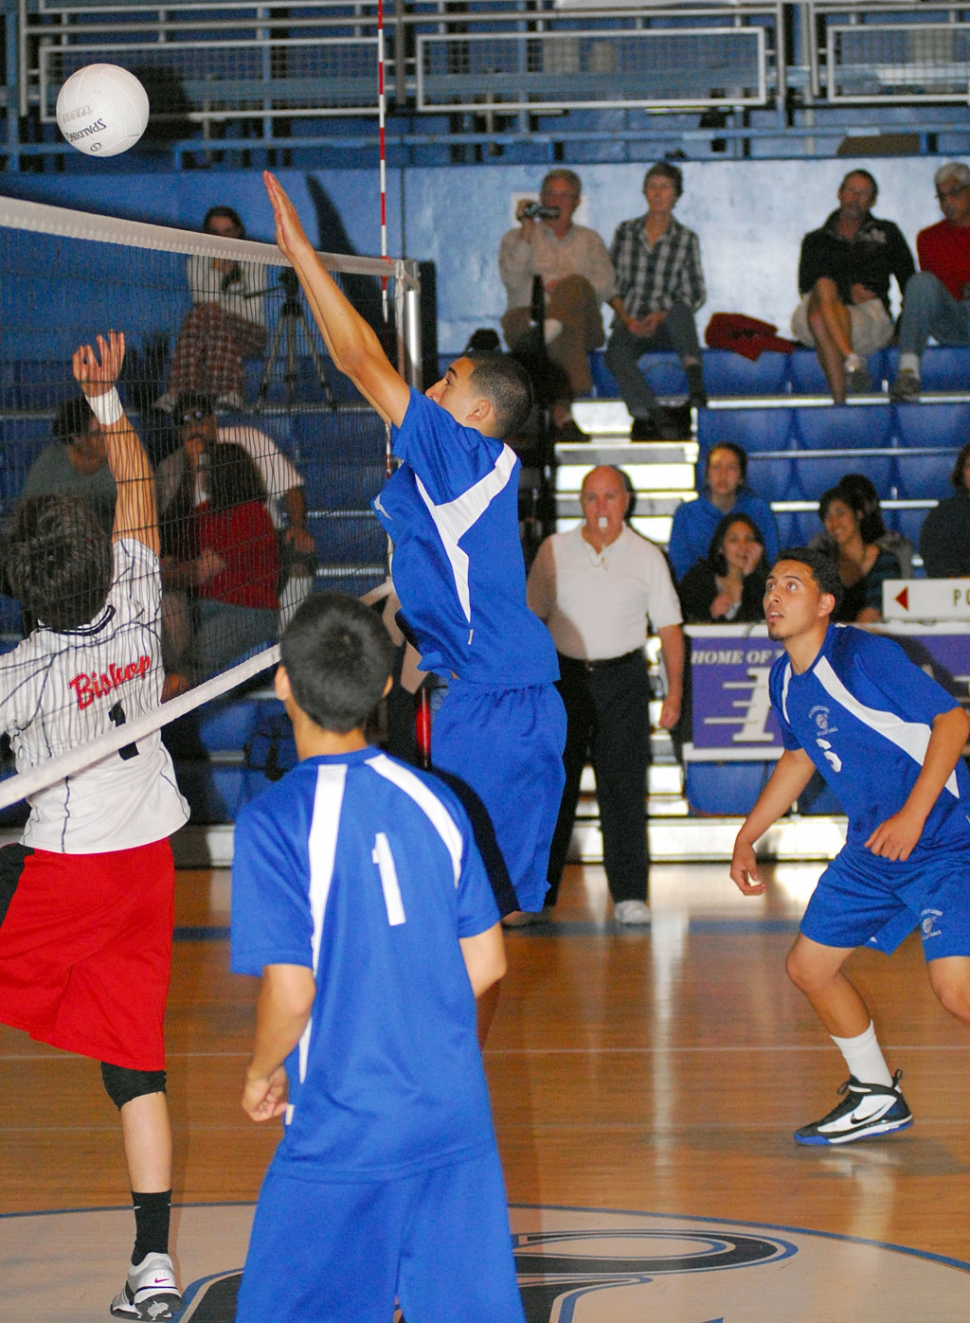 Nathan Zavala blocks the ball from Bishop Diego. Fillmore lost, 25-17, 25-15, 25-19. Tony Cortez contributed 3 kills and 1 block.